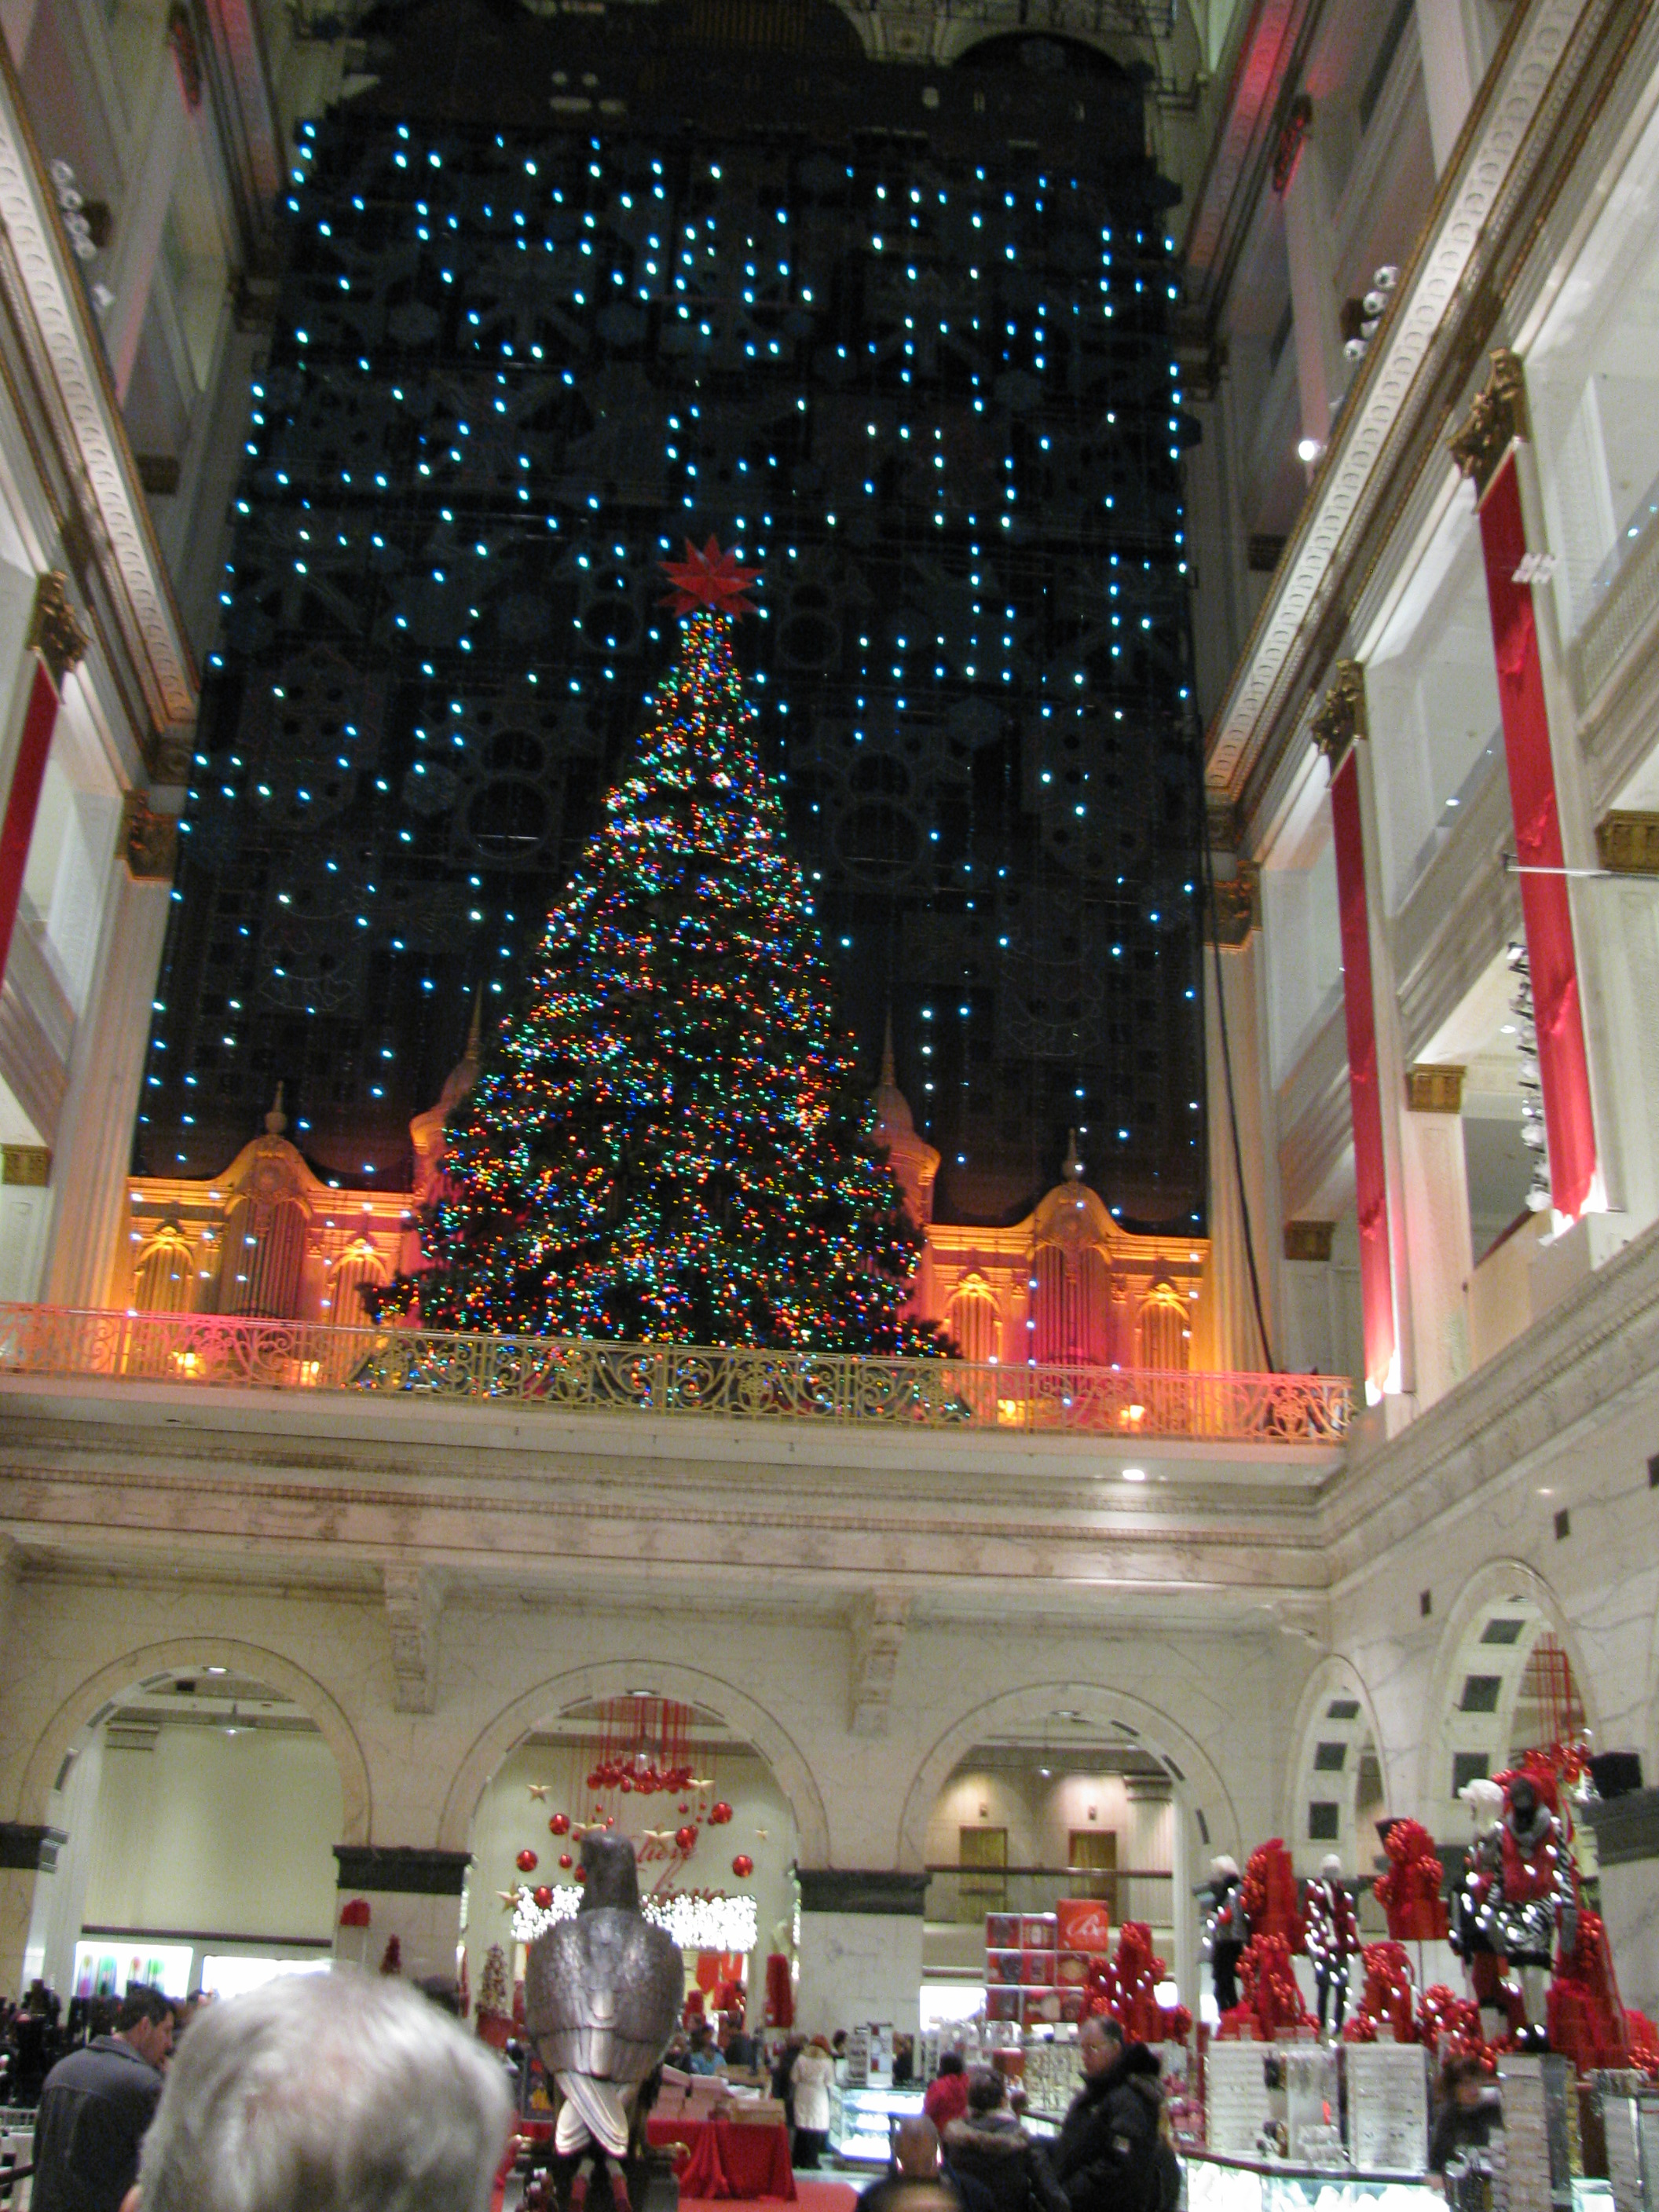 Subdued Christmas in Center City | Hidden City Philadelphia